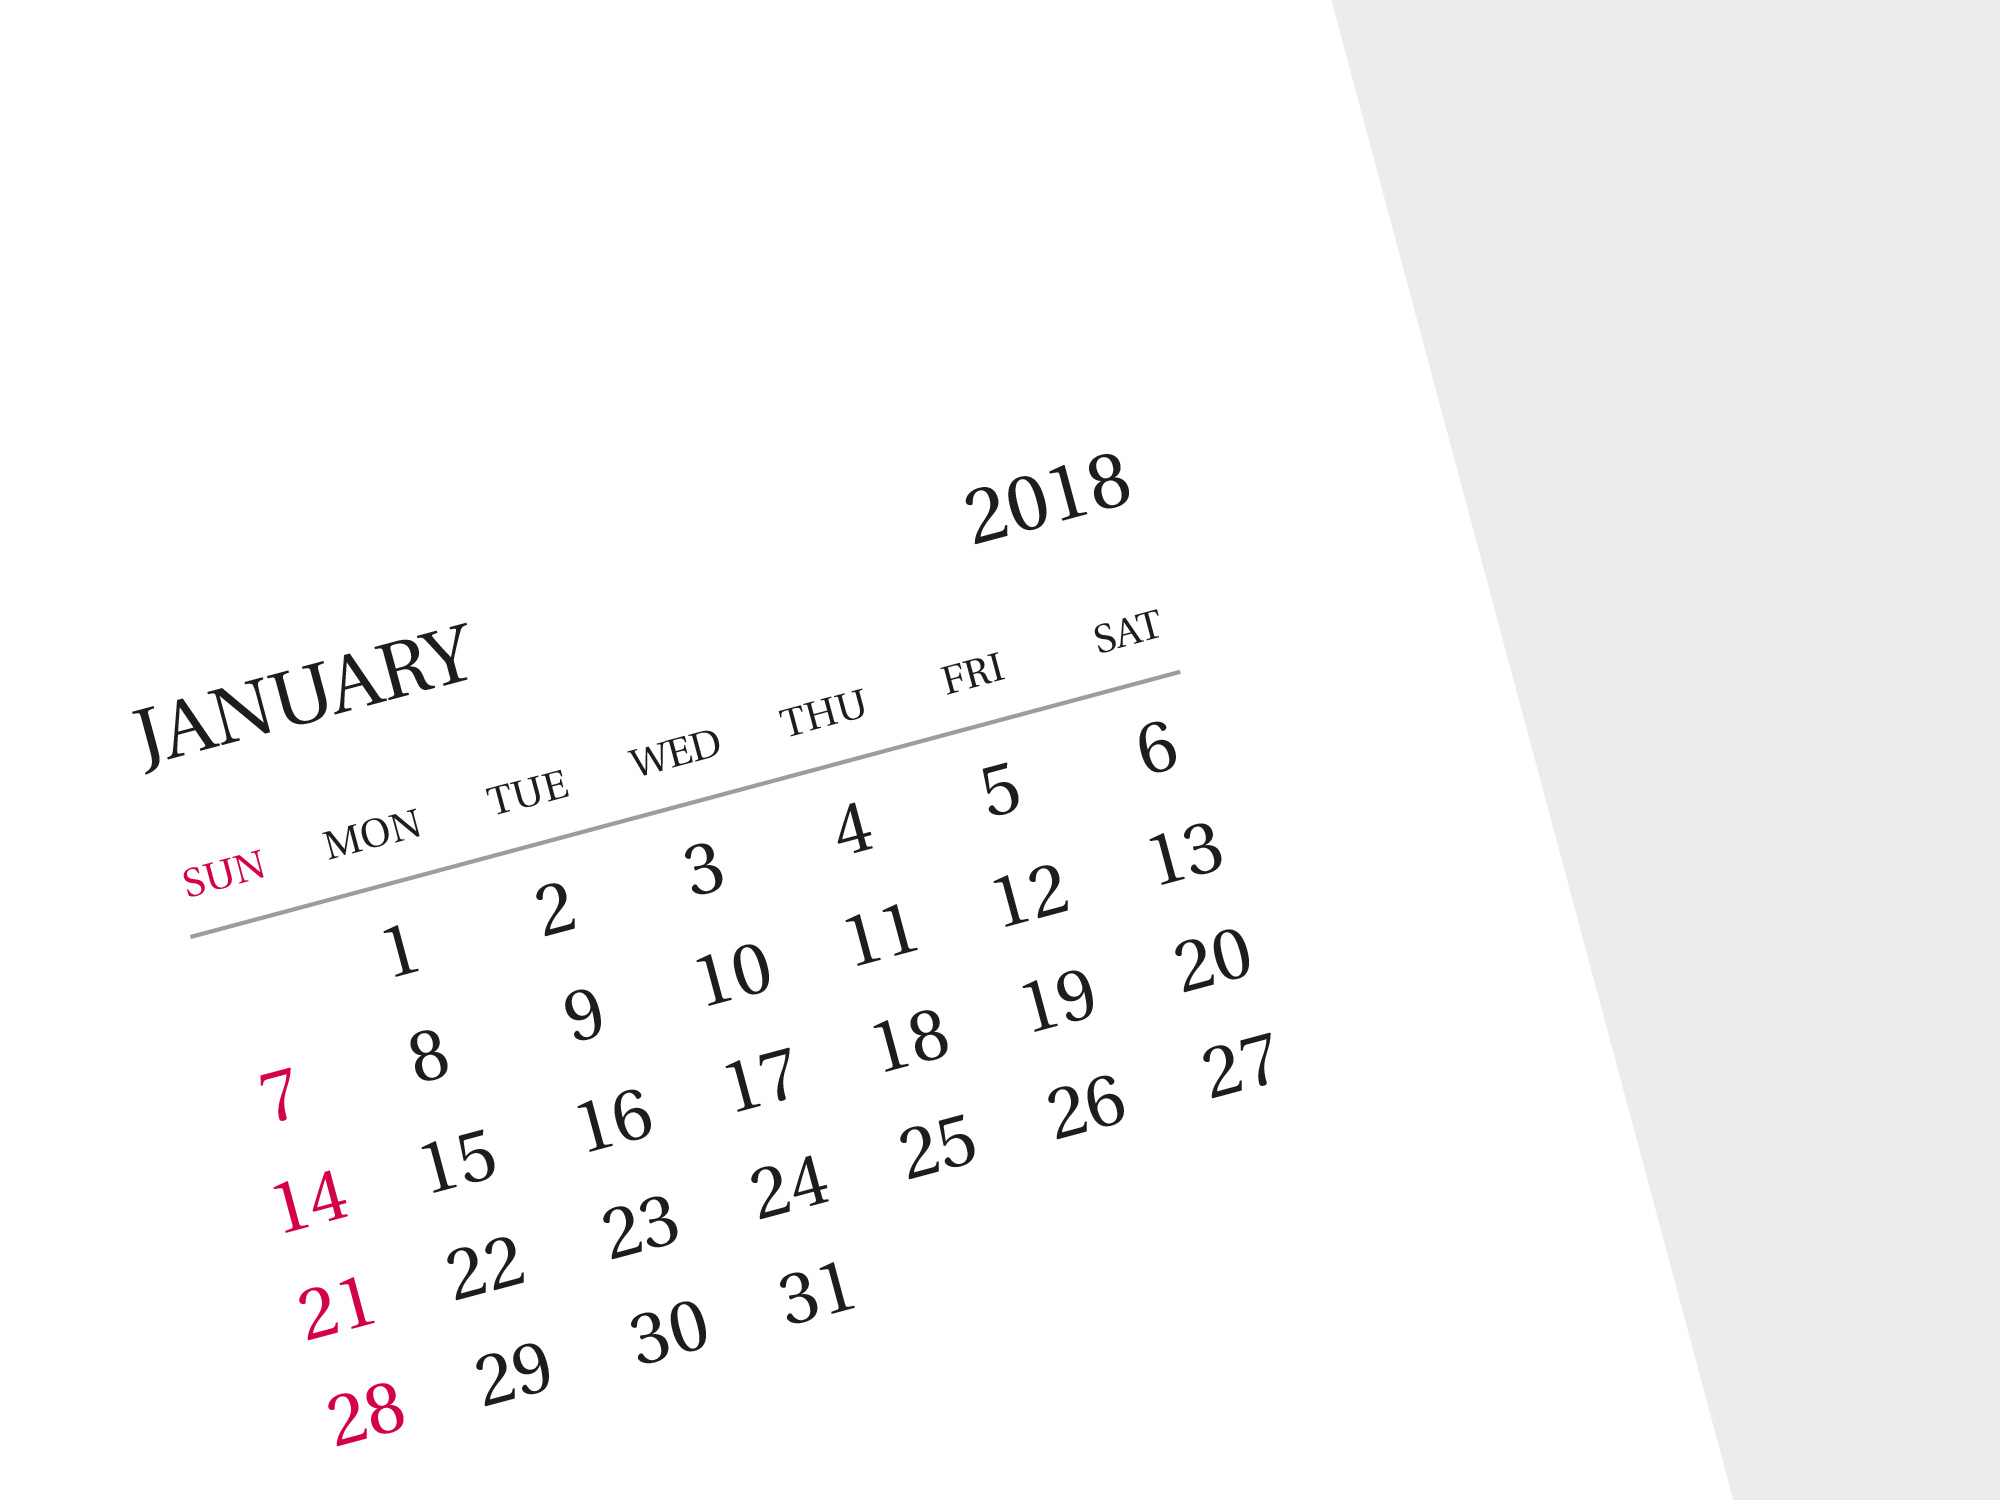 2018 printable monthly calendar. Photo A3 and A2 wall